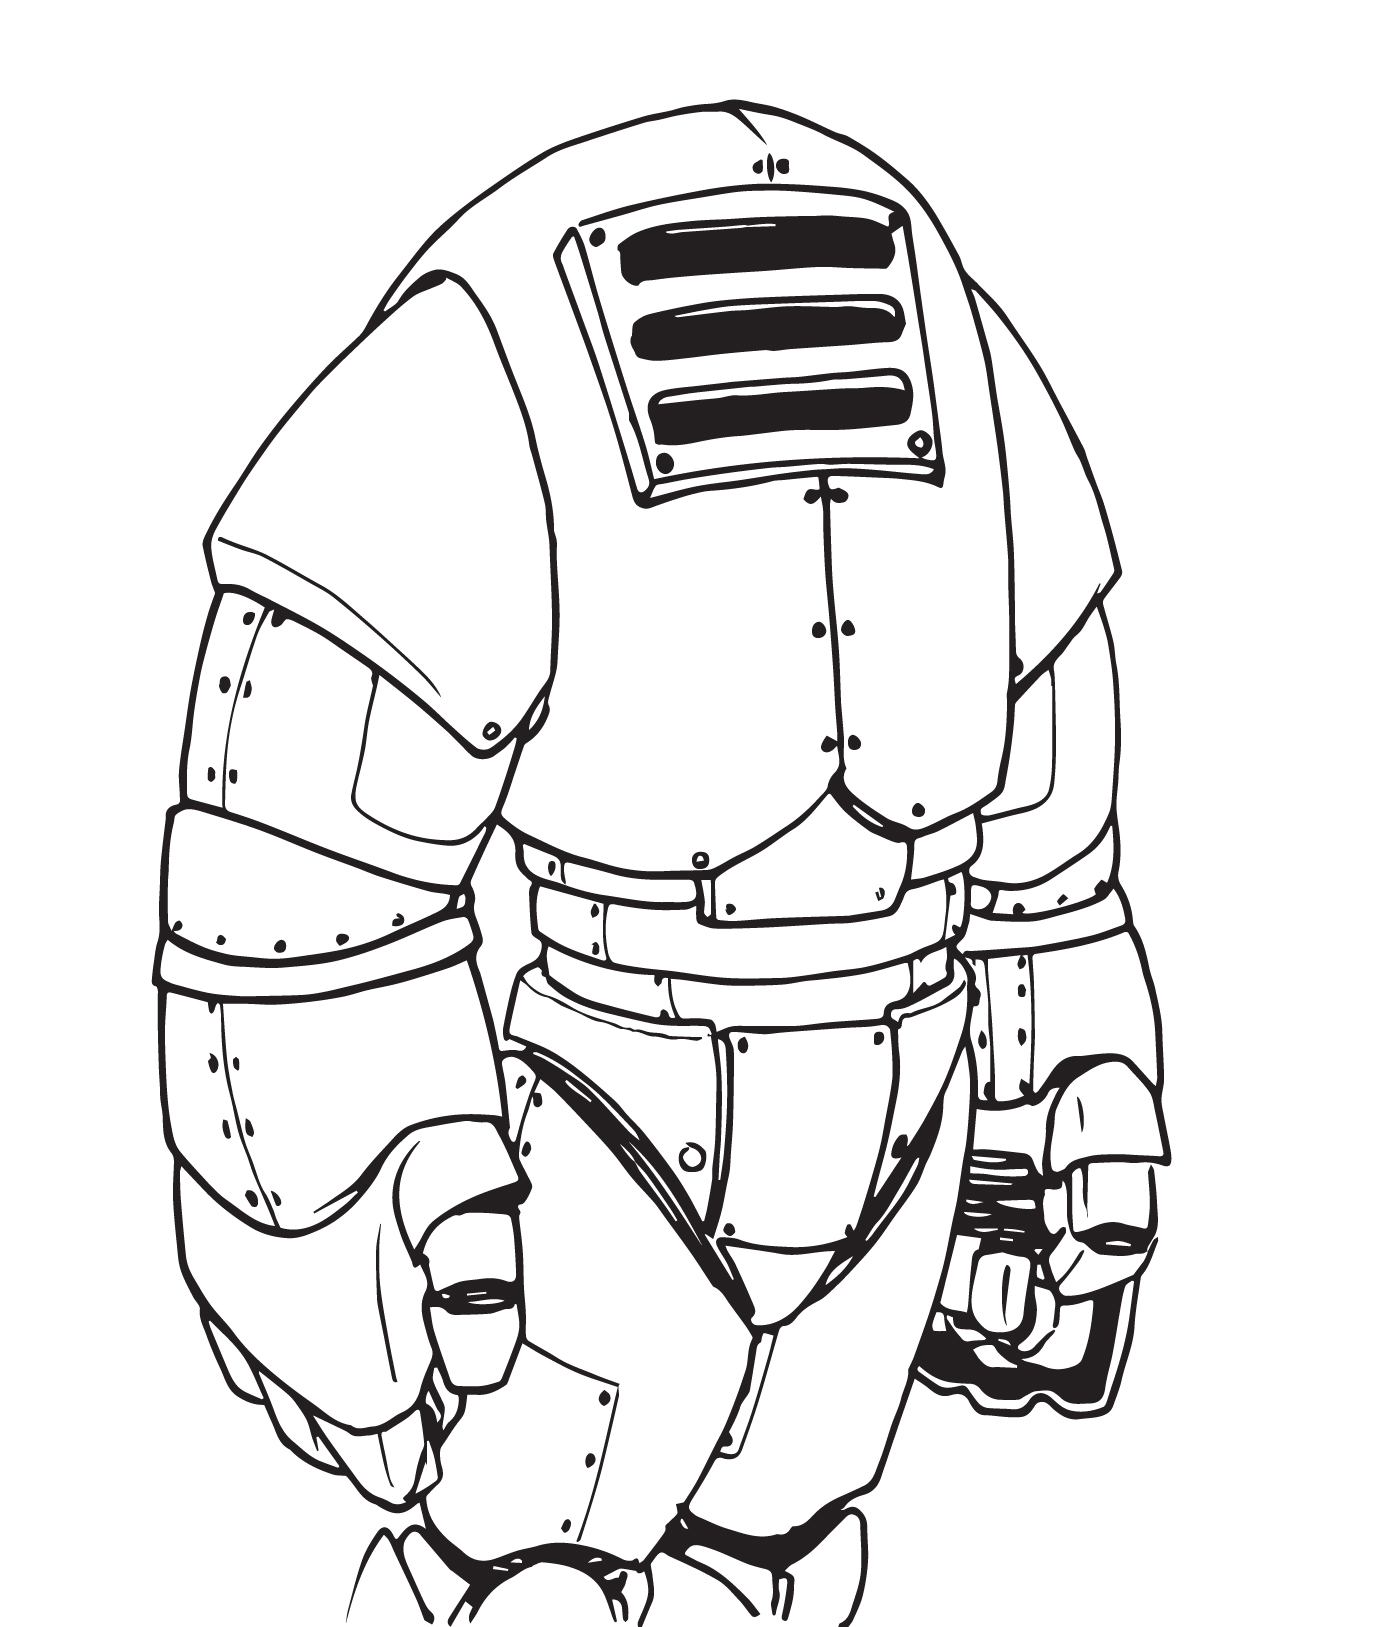 space suit drawing - photo #8